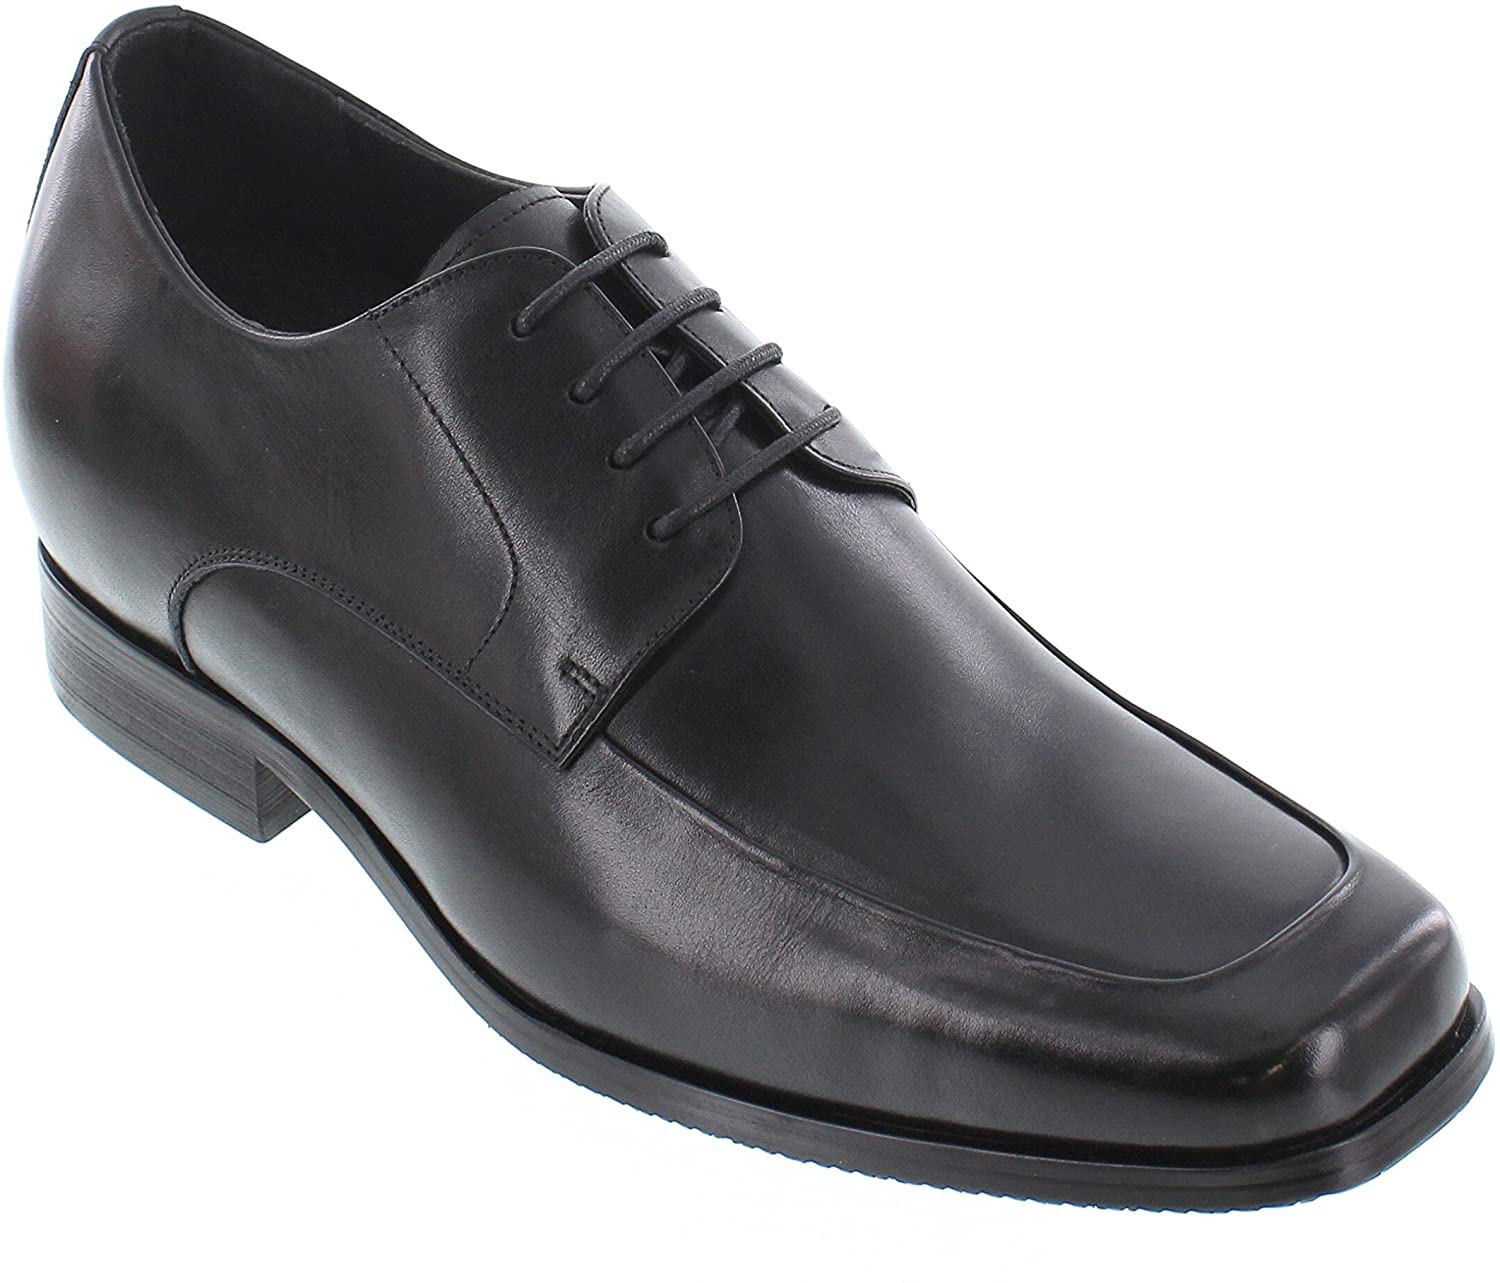 CALTO Men's Invisible Height Increasing Elevator Shoes - Black Premium Leather Lace-up Formal Oxfords - 3 Inches Taller - Y3036